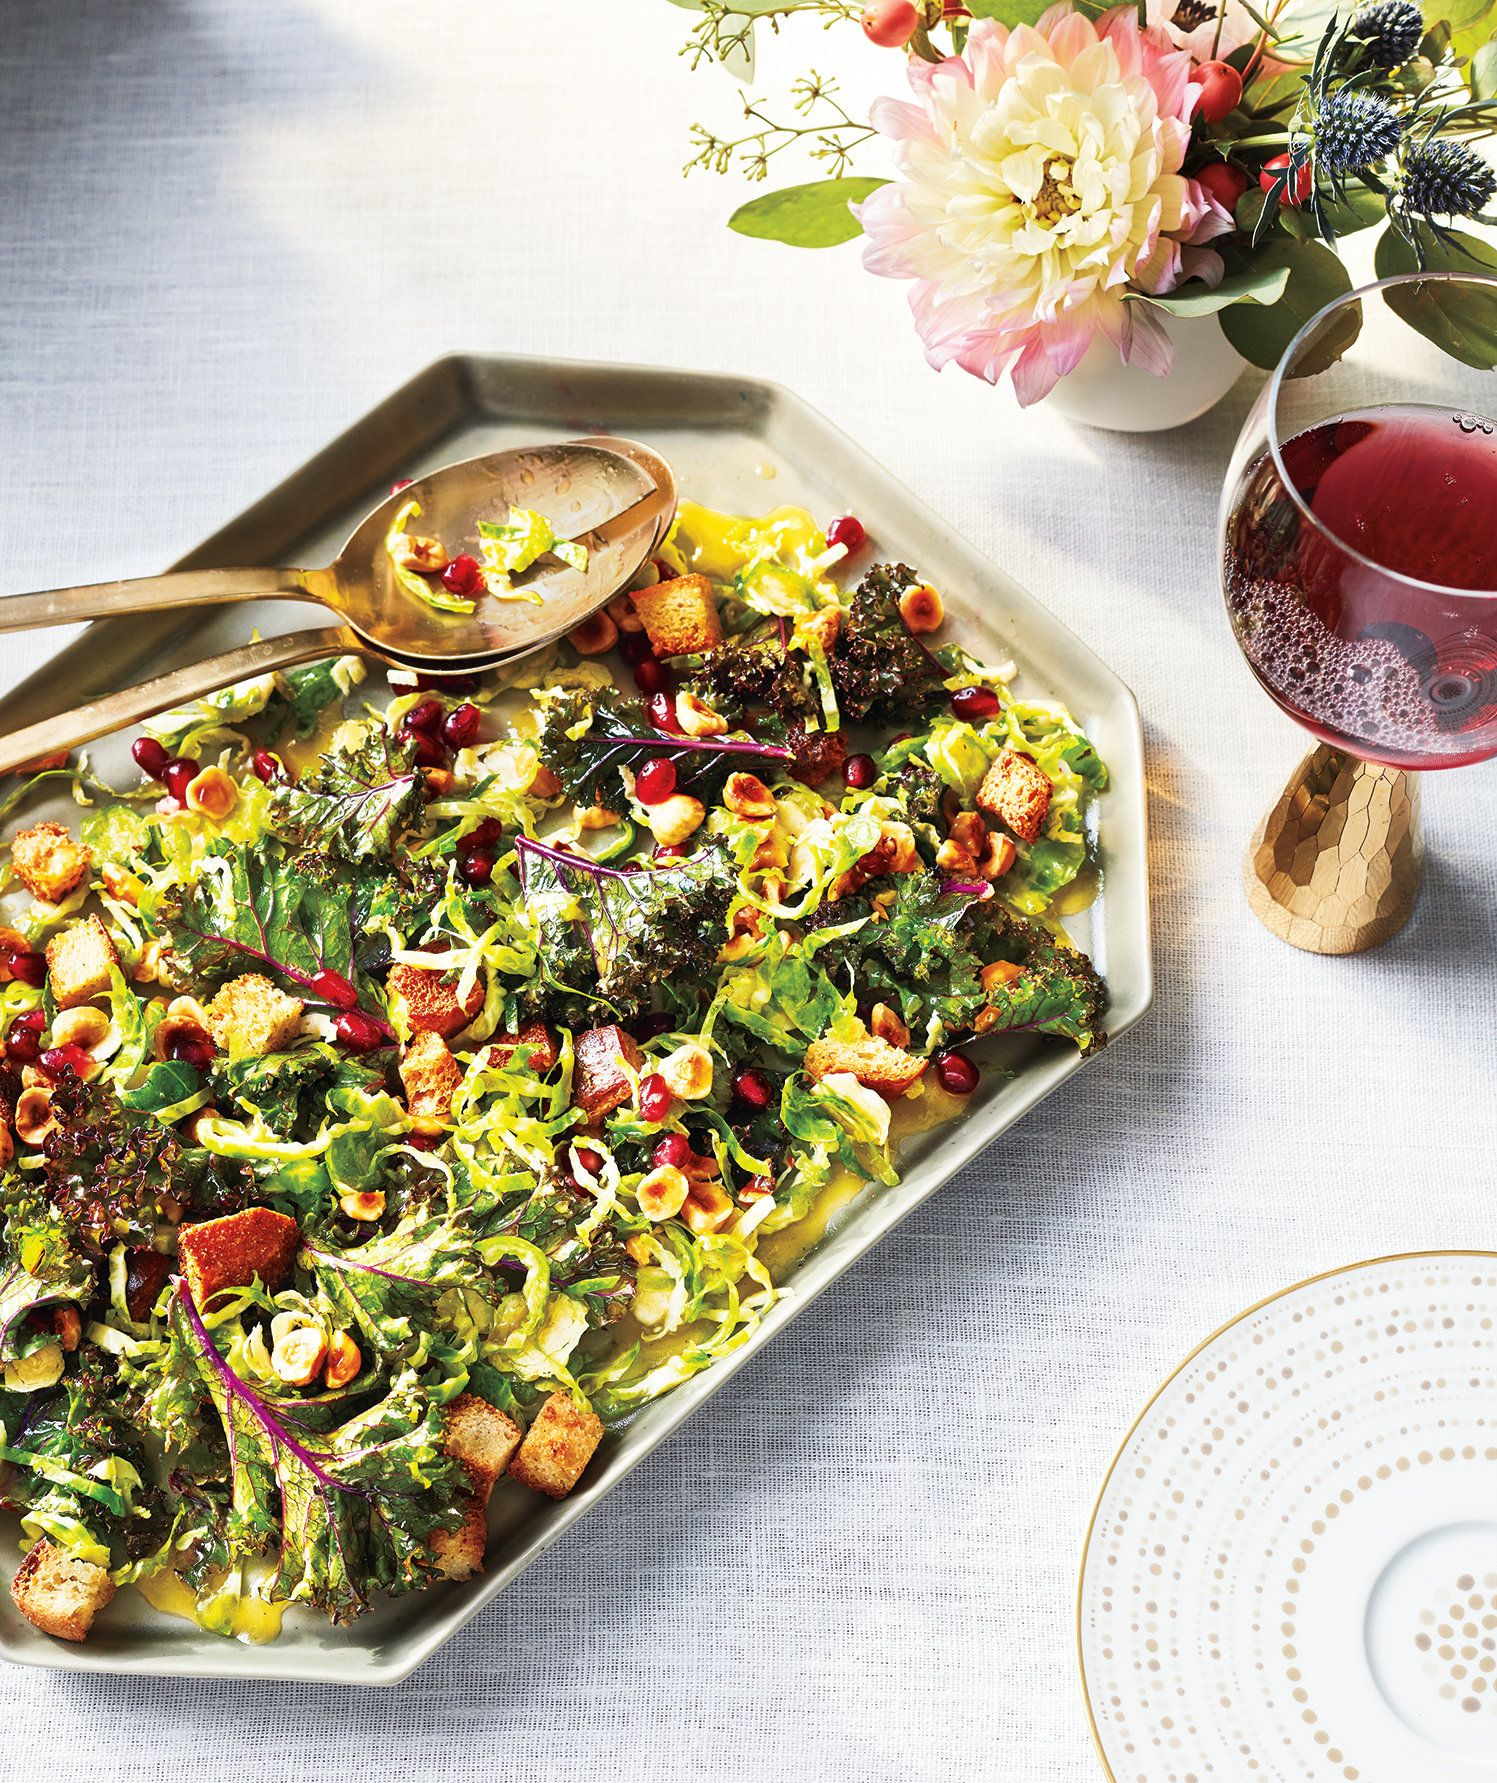 Make-Ahead Holiday Salad